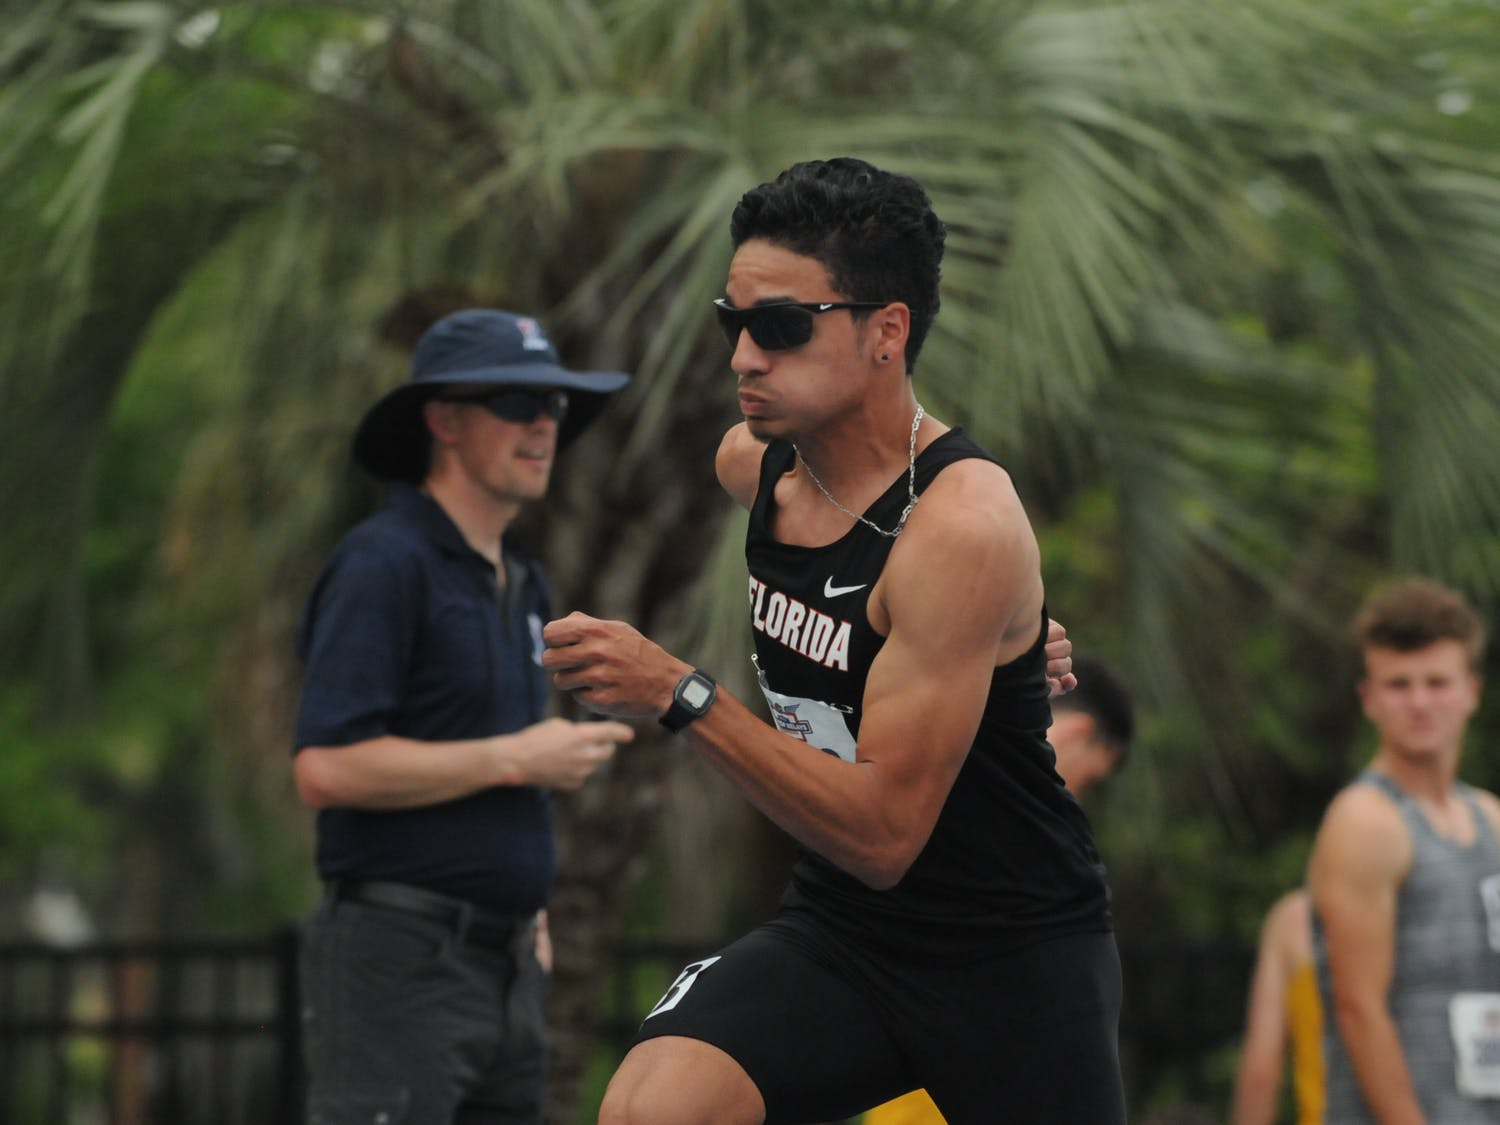 Junior mid-distance runner Andres Arroyo competes in the 800 meters during the Florida Relays on April 1, 2016, at Percy Beard Track.